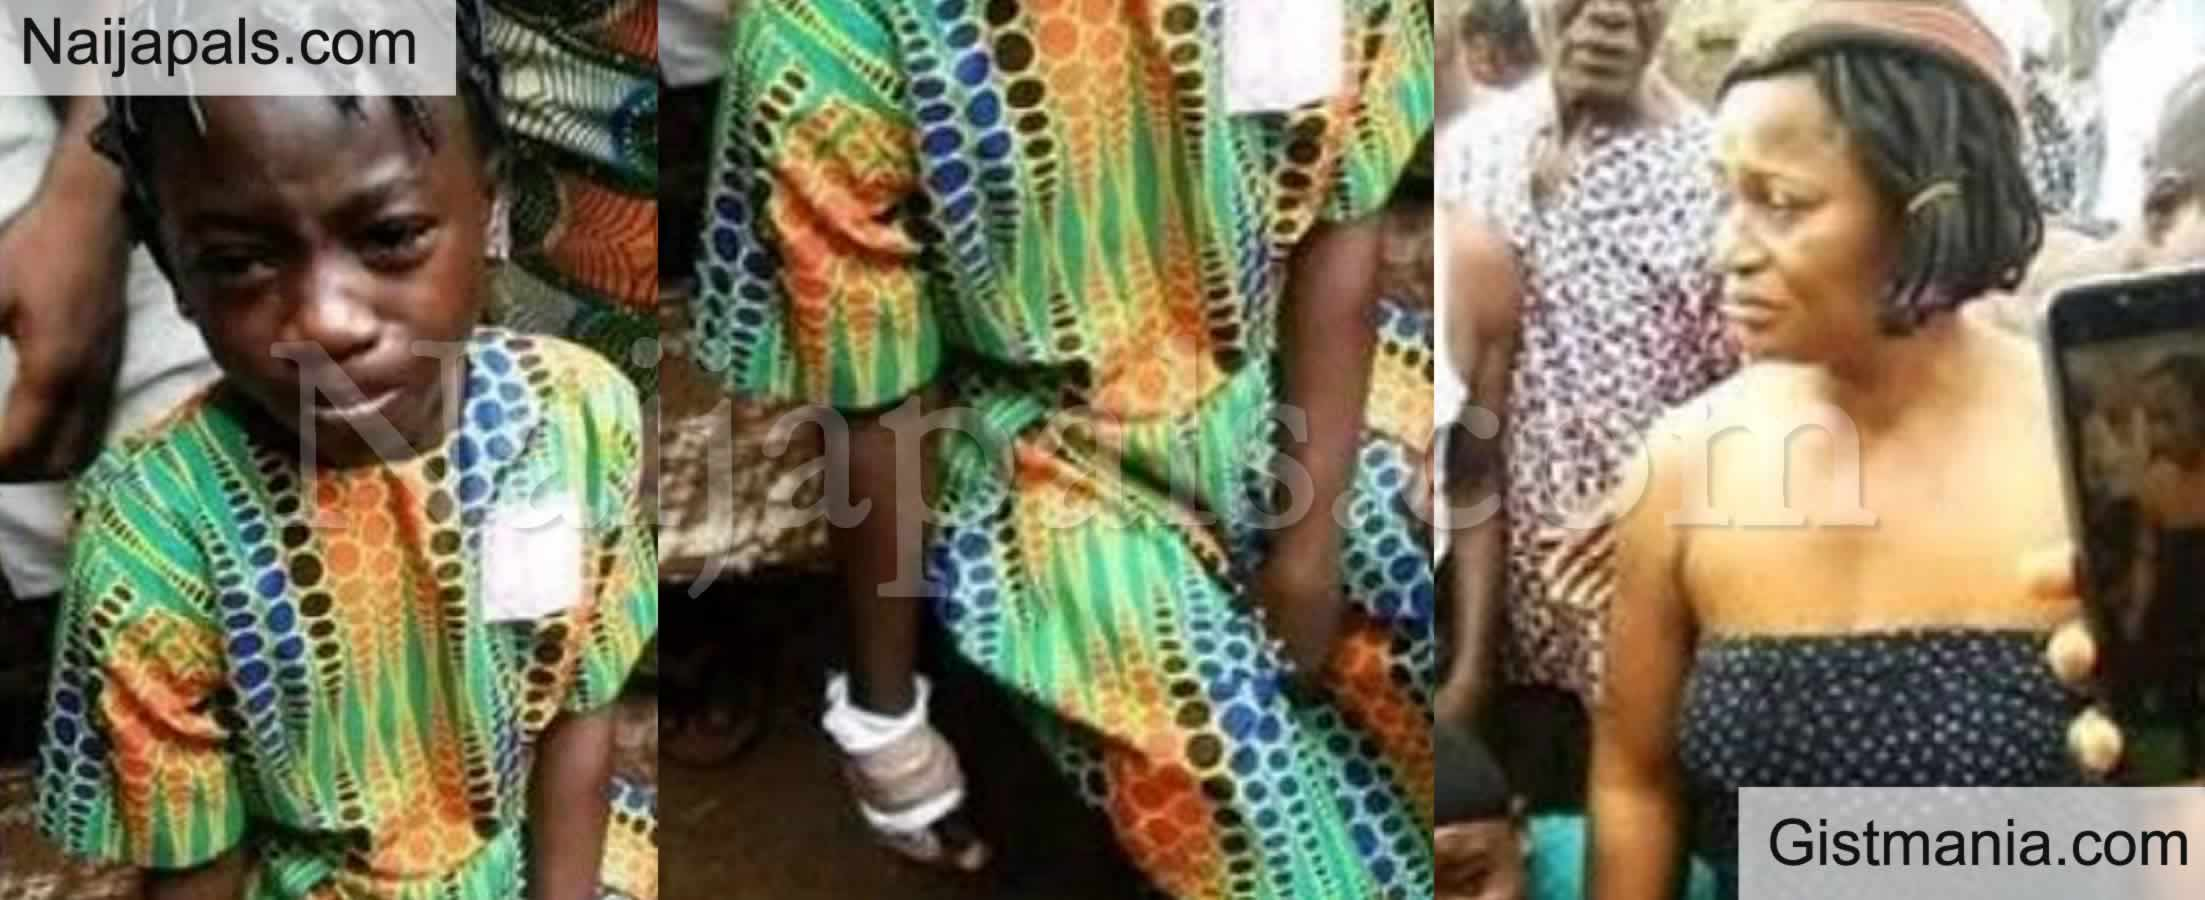 <img alt='.' class='lazyload' data-src='https://img.gistmania.com/emot/shocked.gif' /> OMG! <b>Woman Chops Off The Thumb of Her Niece Who Lives With Her in Onitsha</b> (SHOCKING PHOTOS)